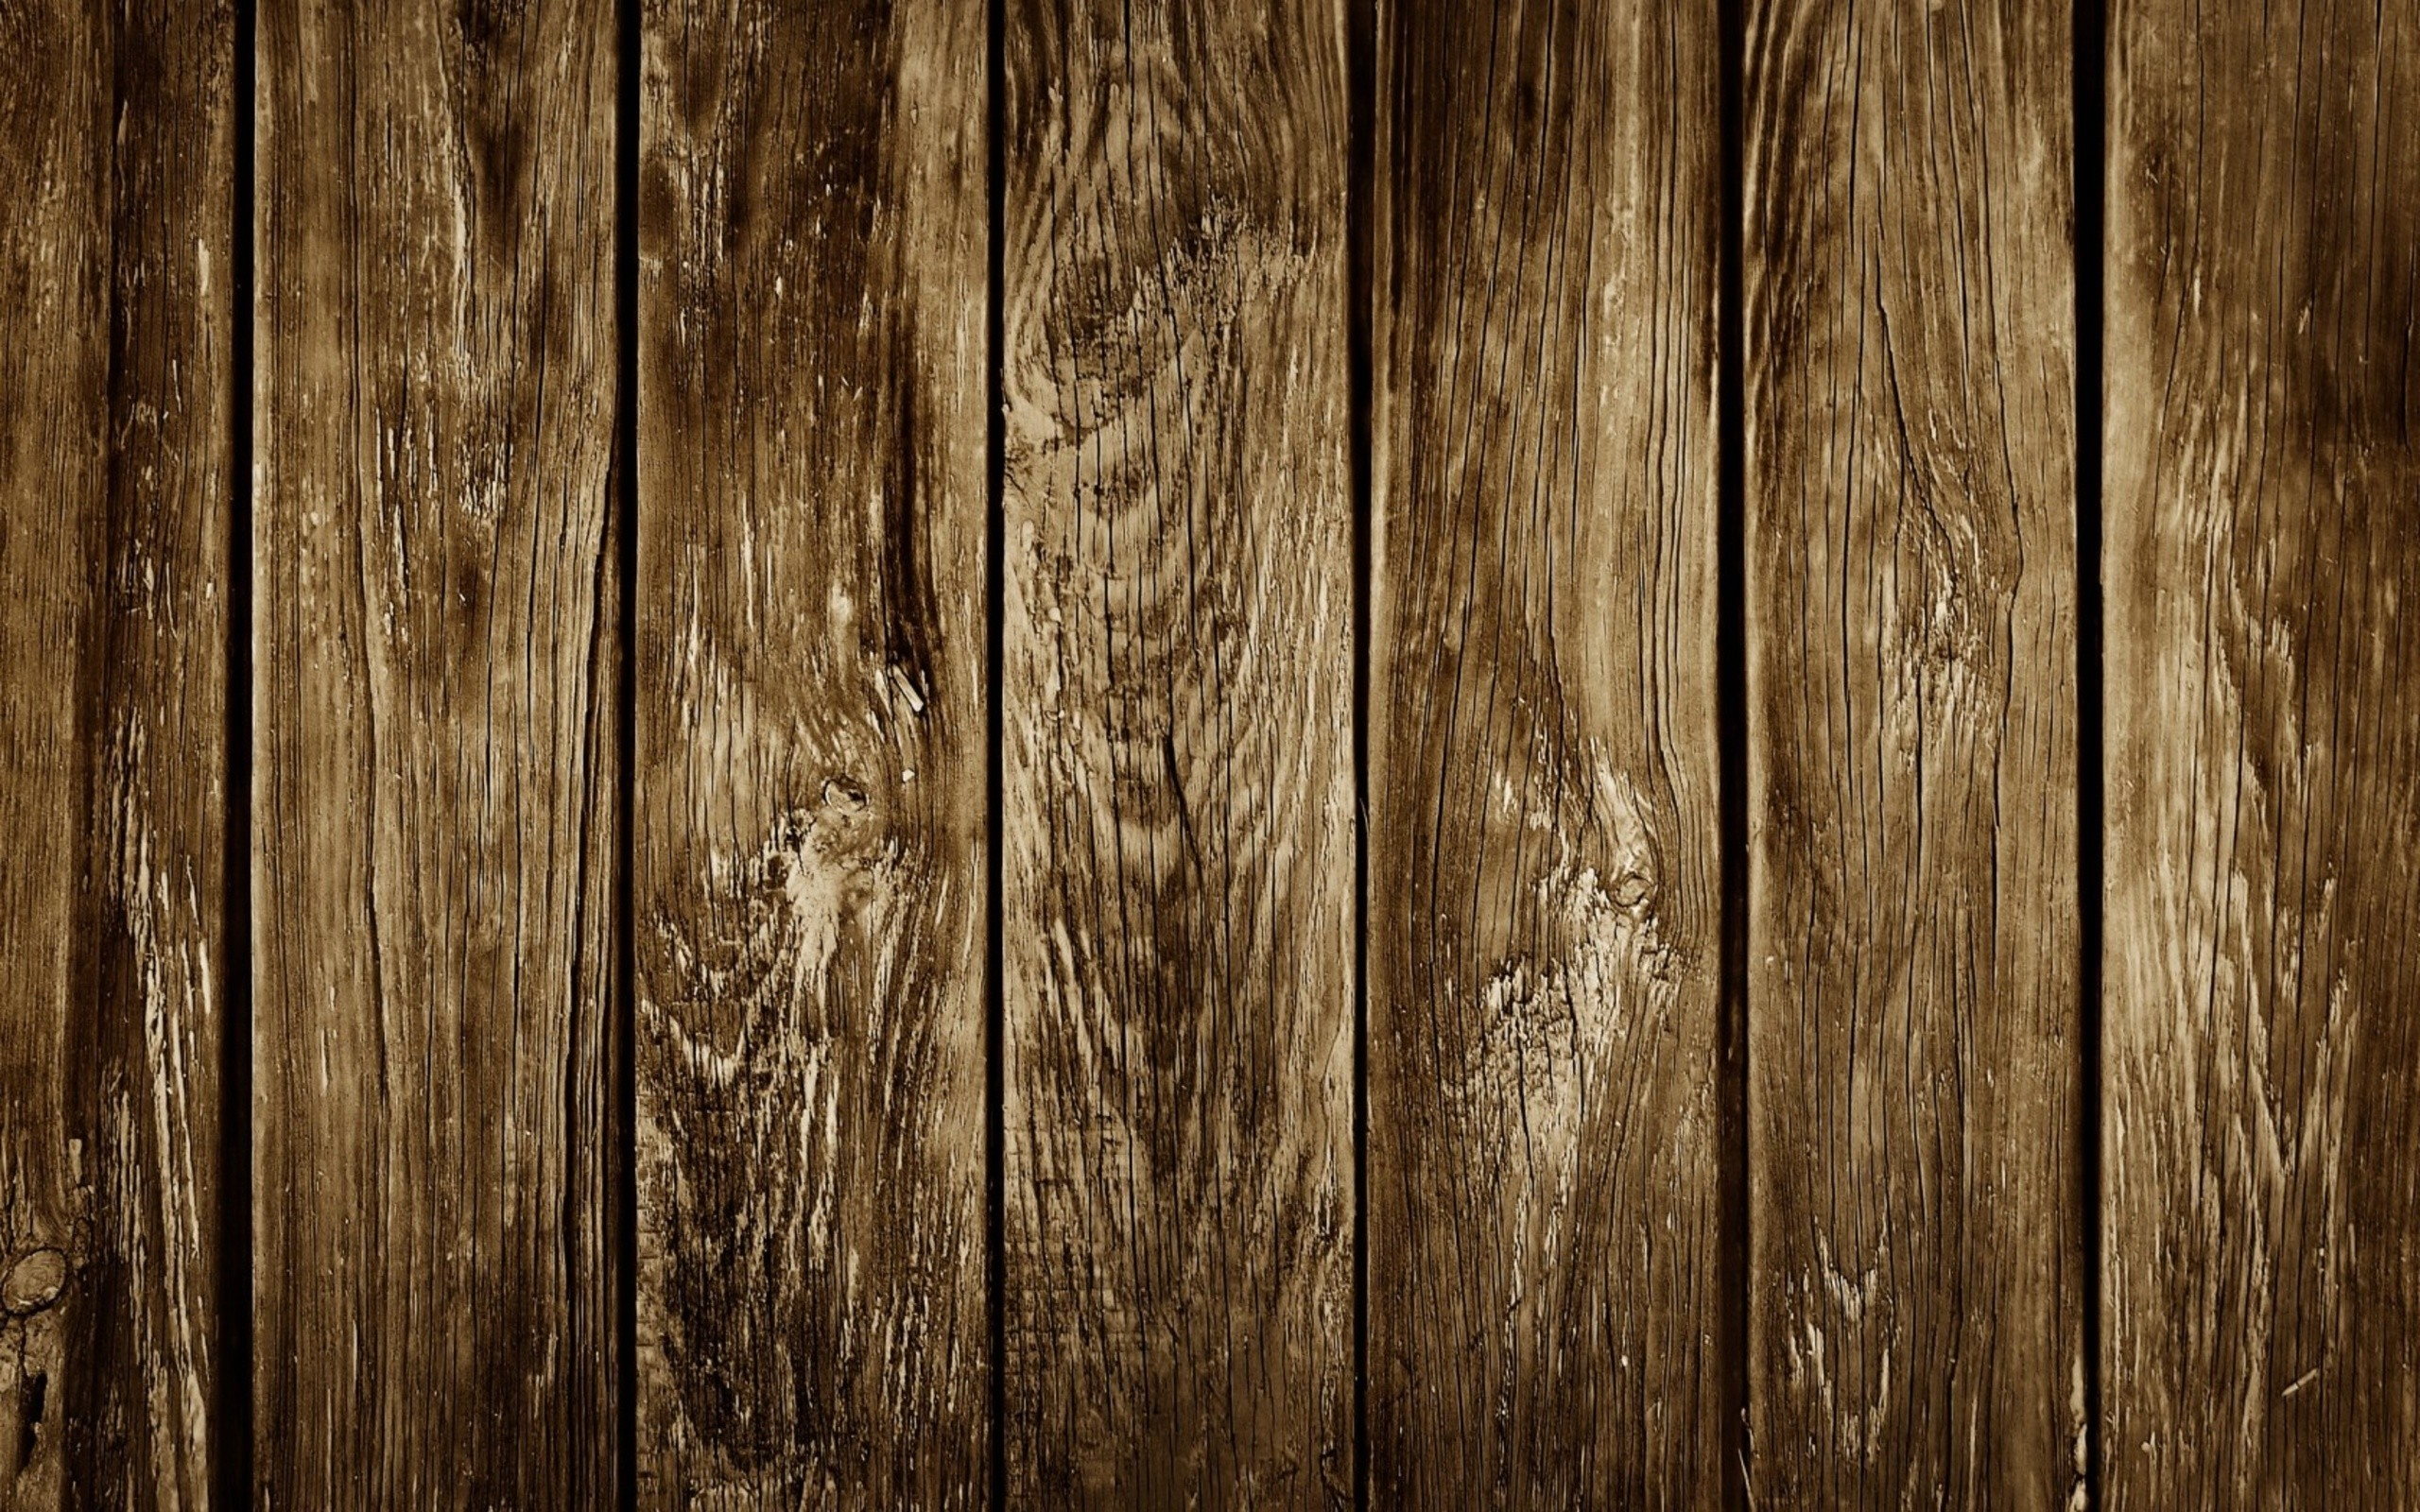 2048x2048 Preview Wallpaper Wooden Solid Dark Brown